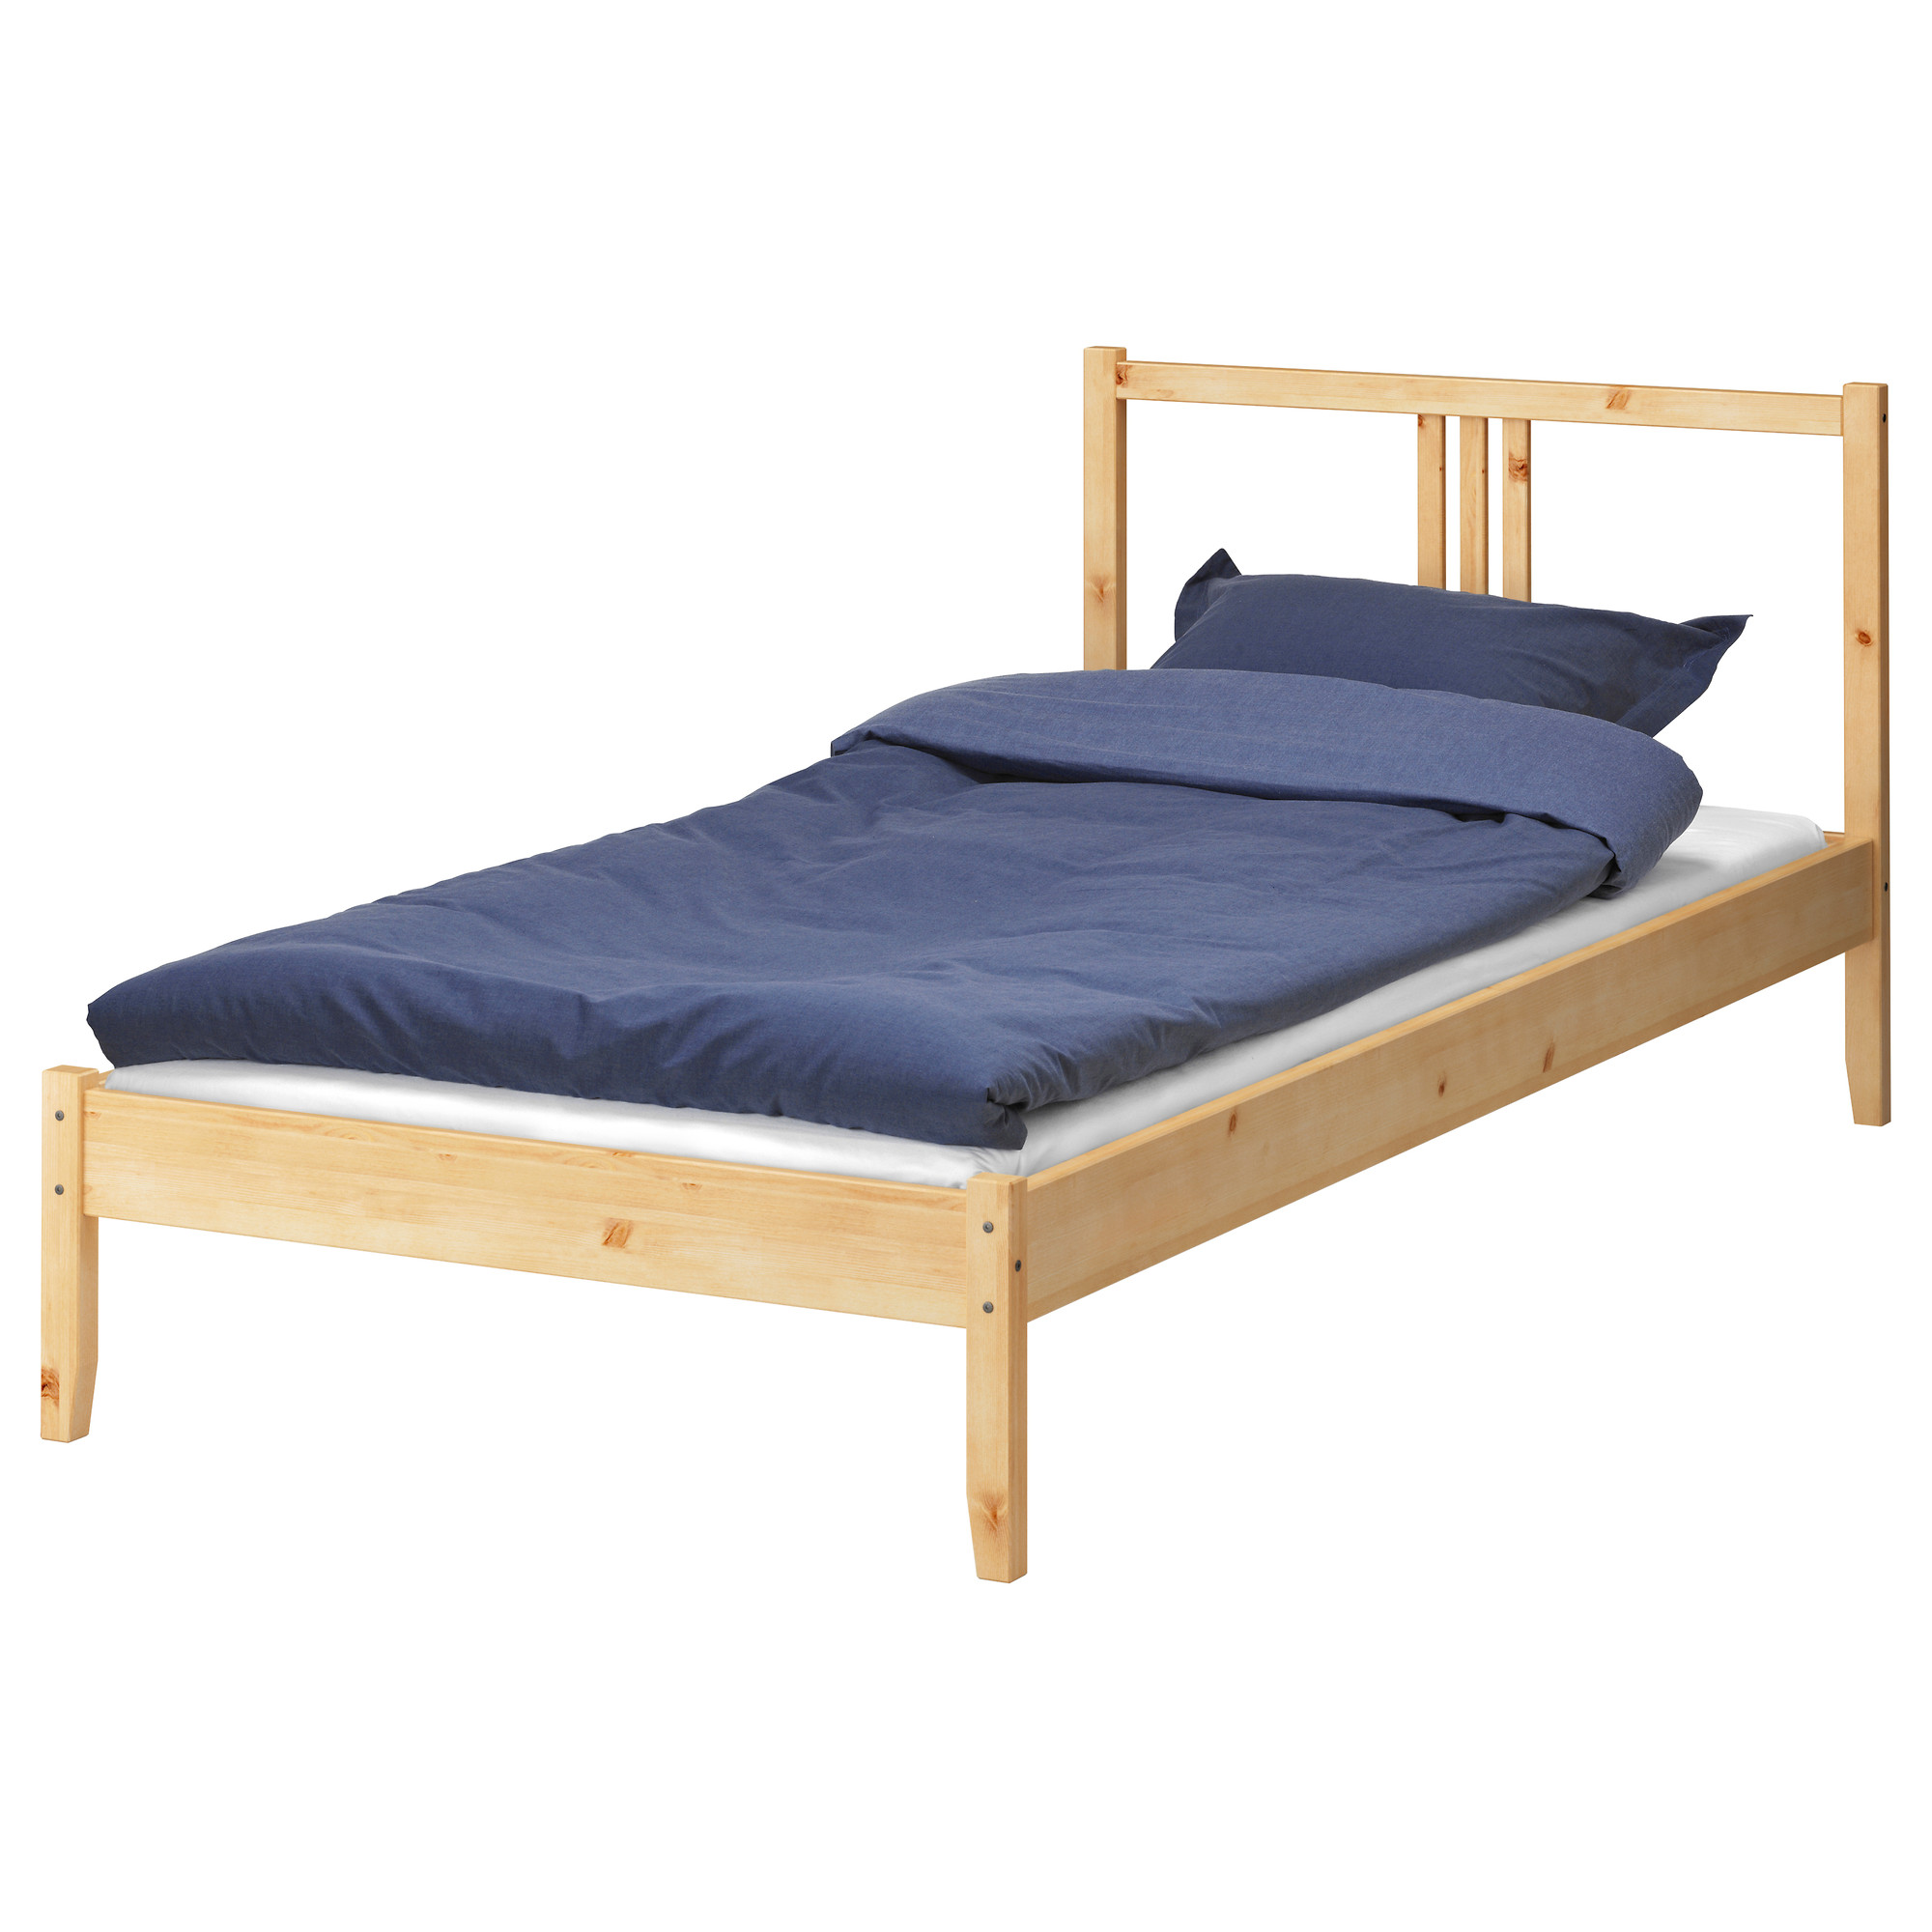 Cool FJELLSE Bed frame - Full/Double - IKEA twin bed frame